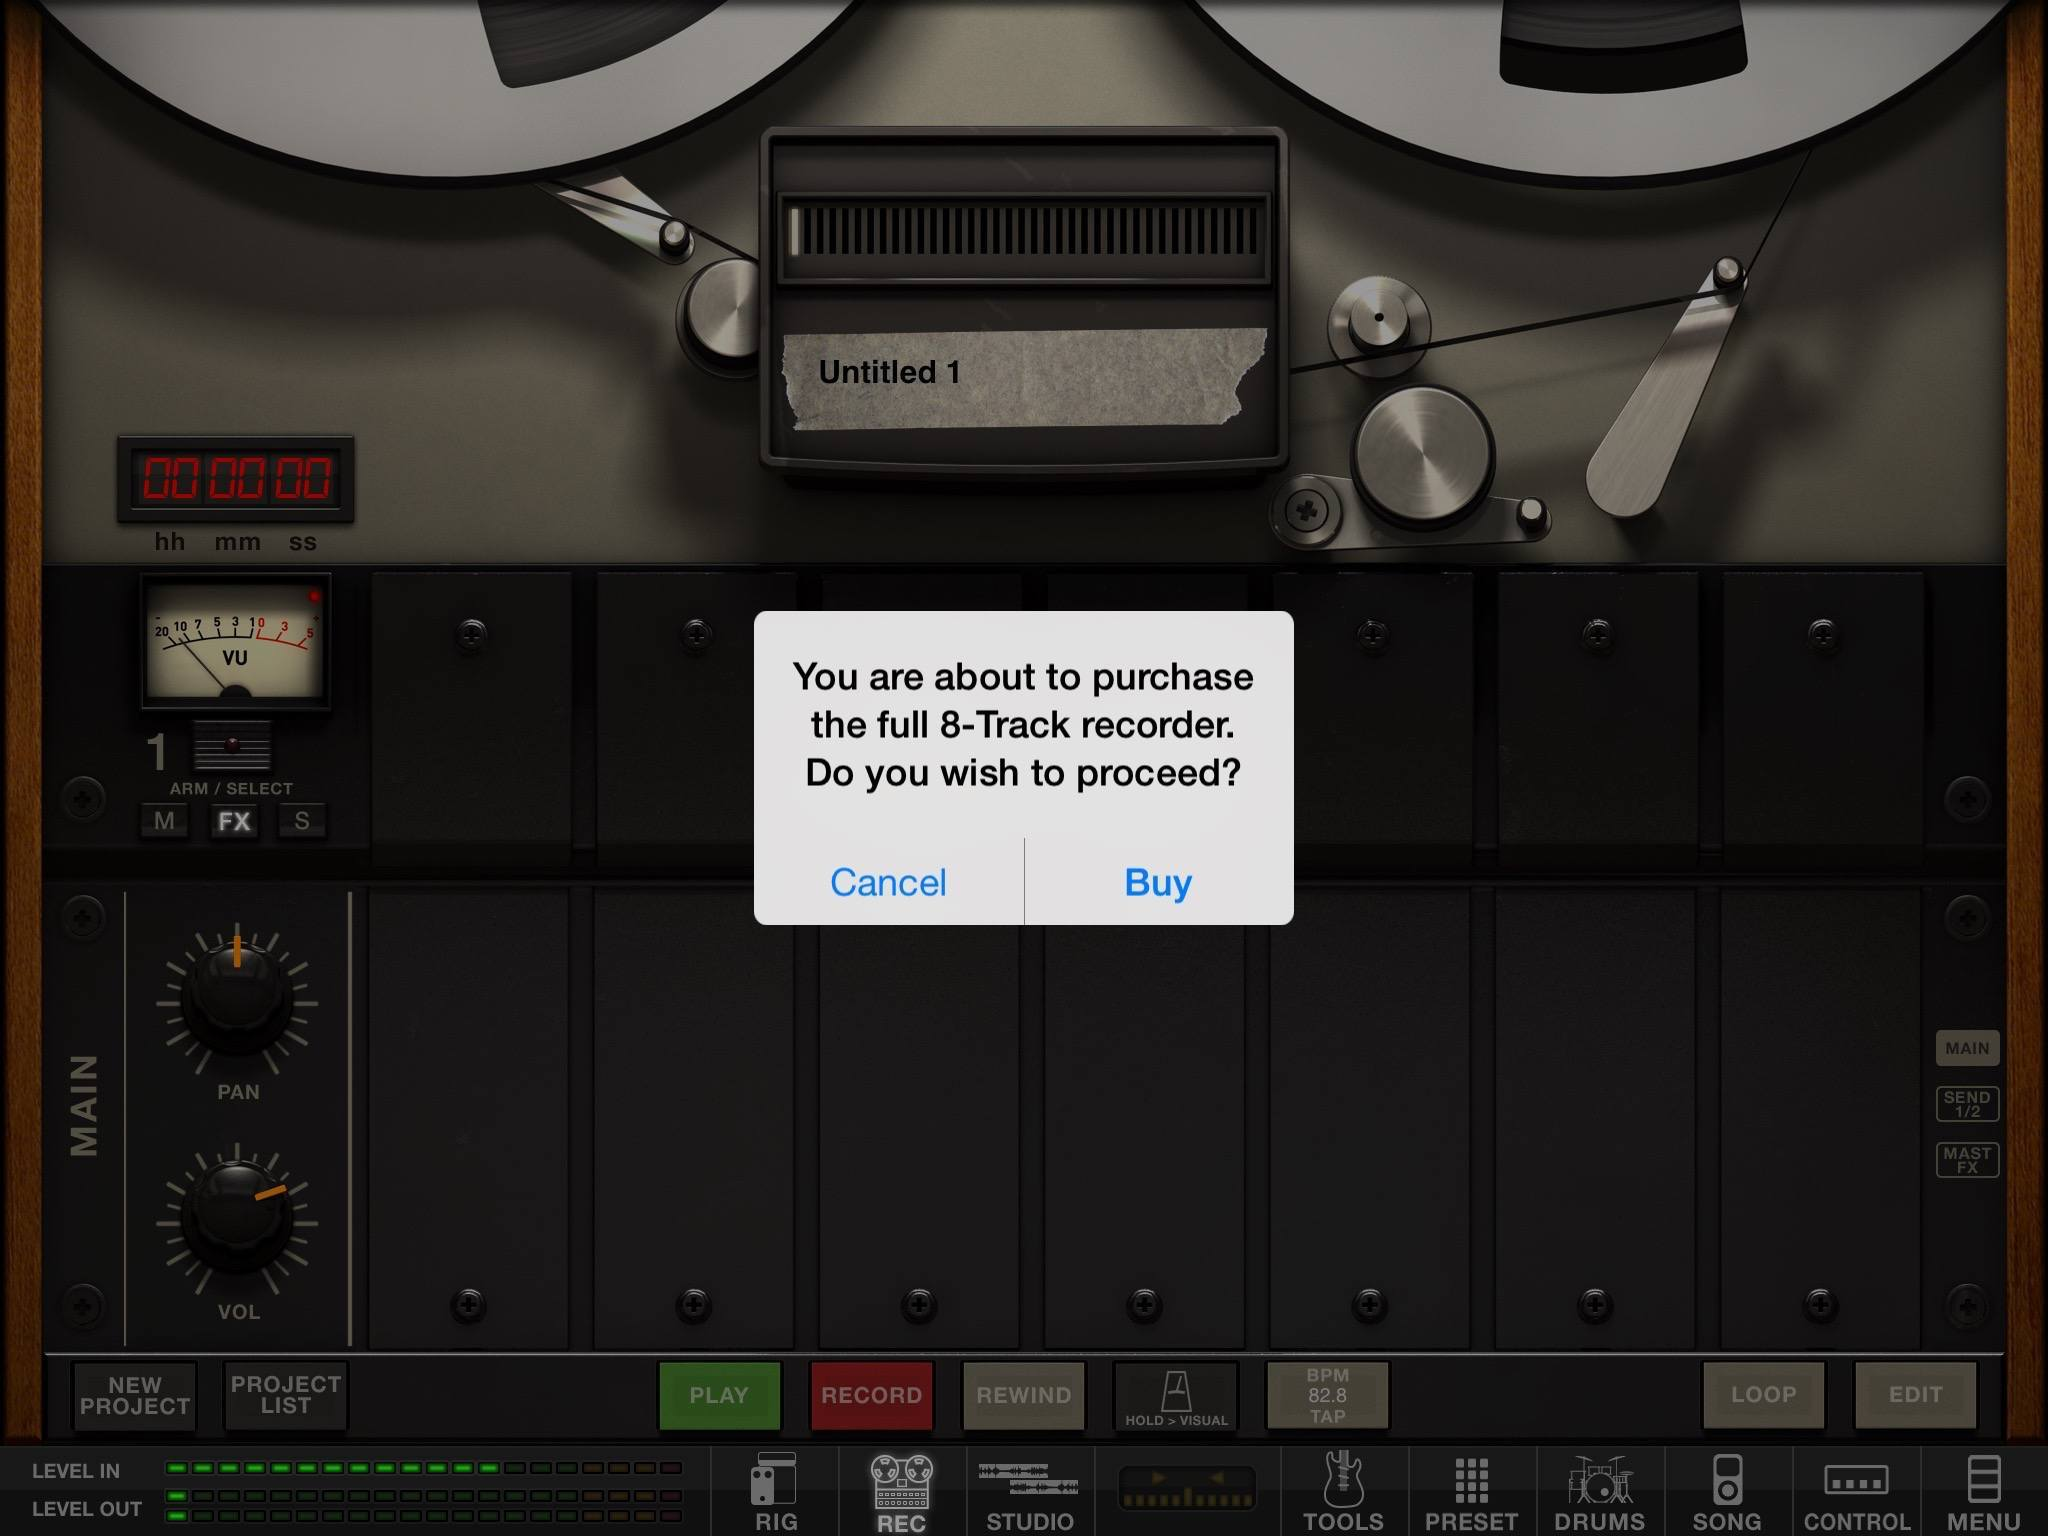 Amplitube, nickel and diming me once again.